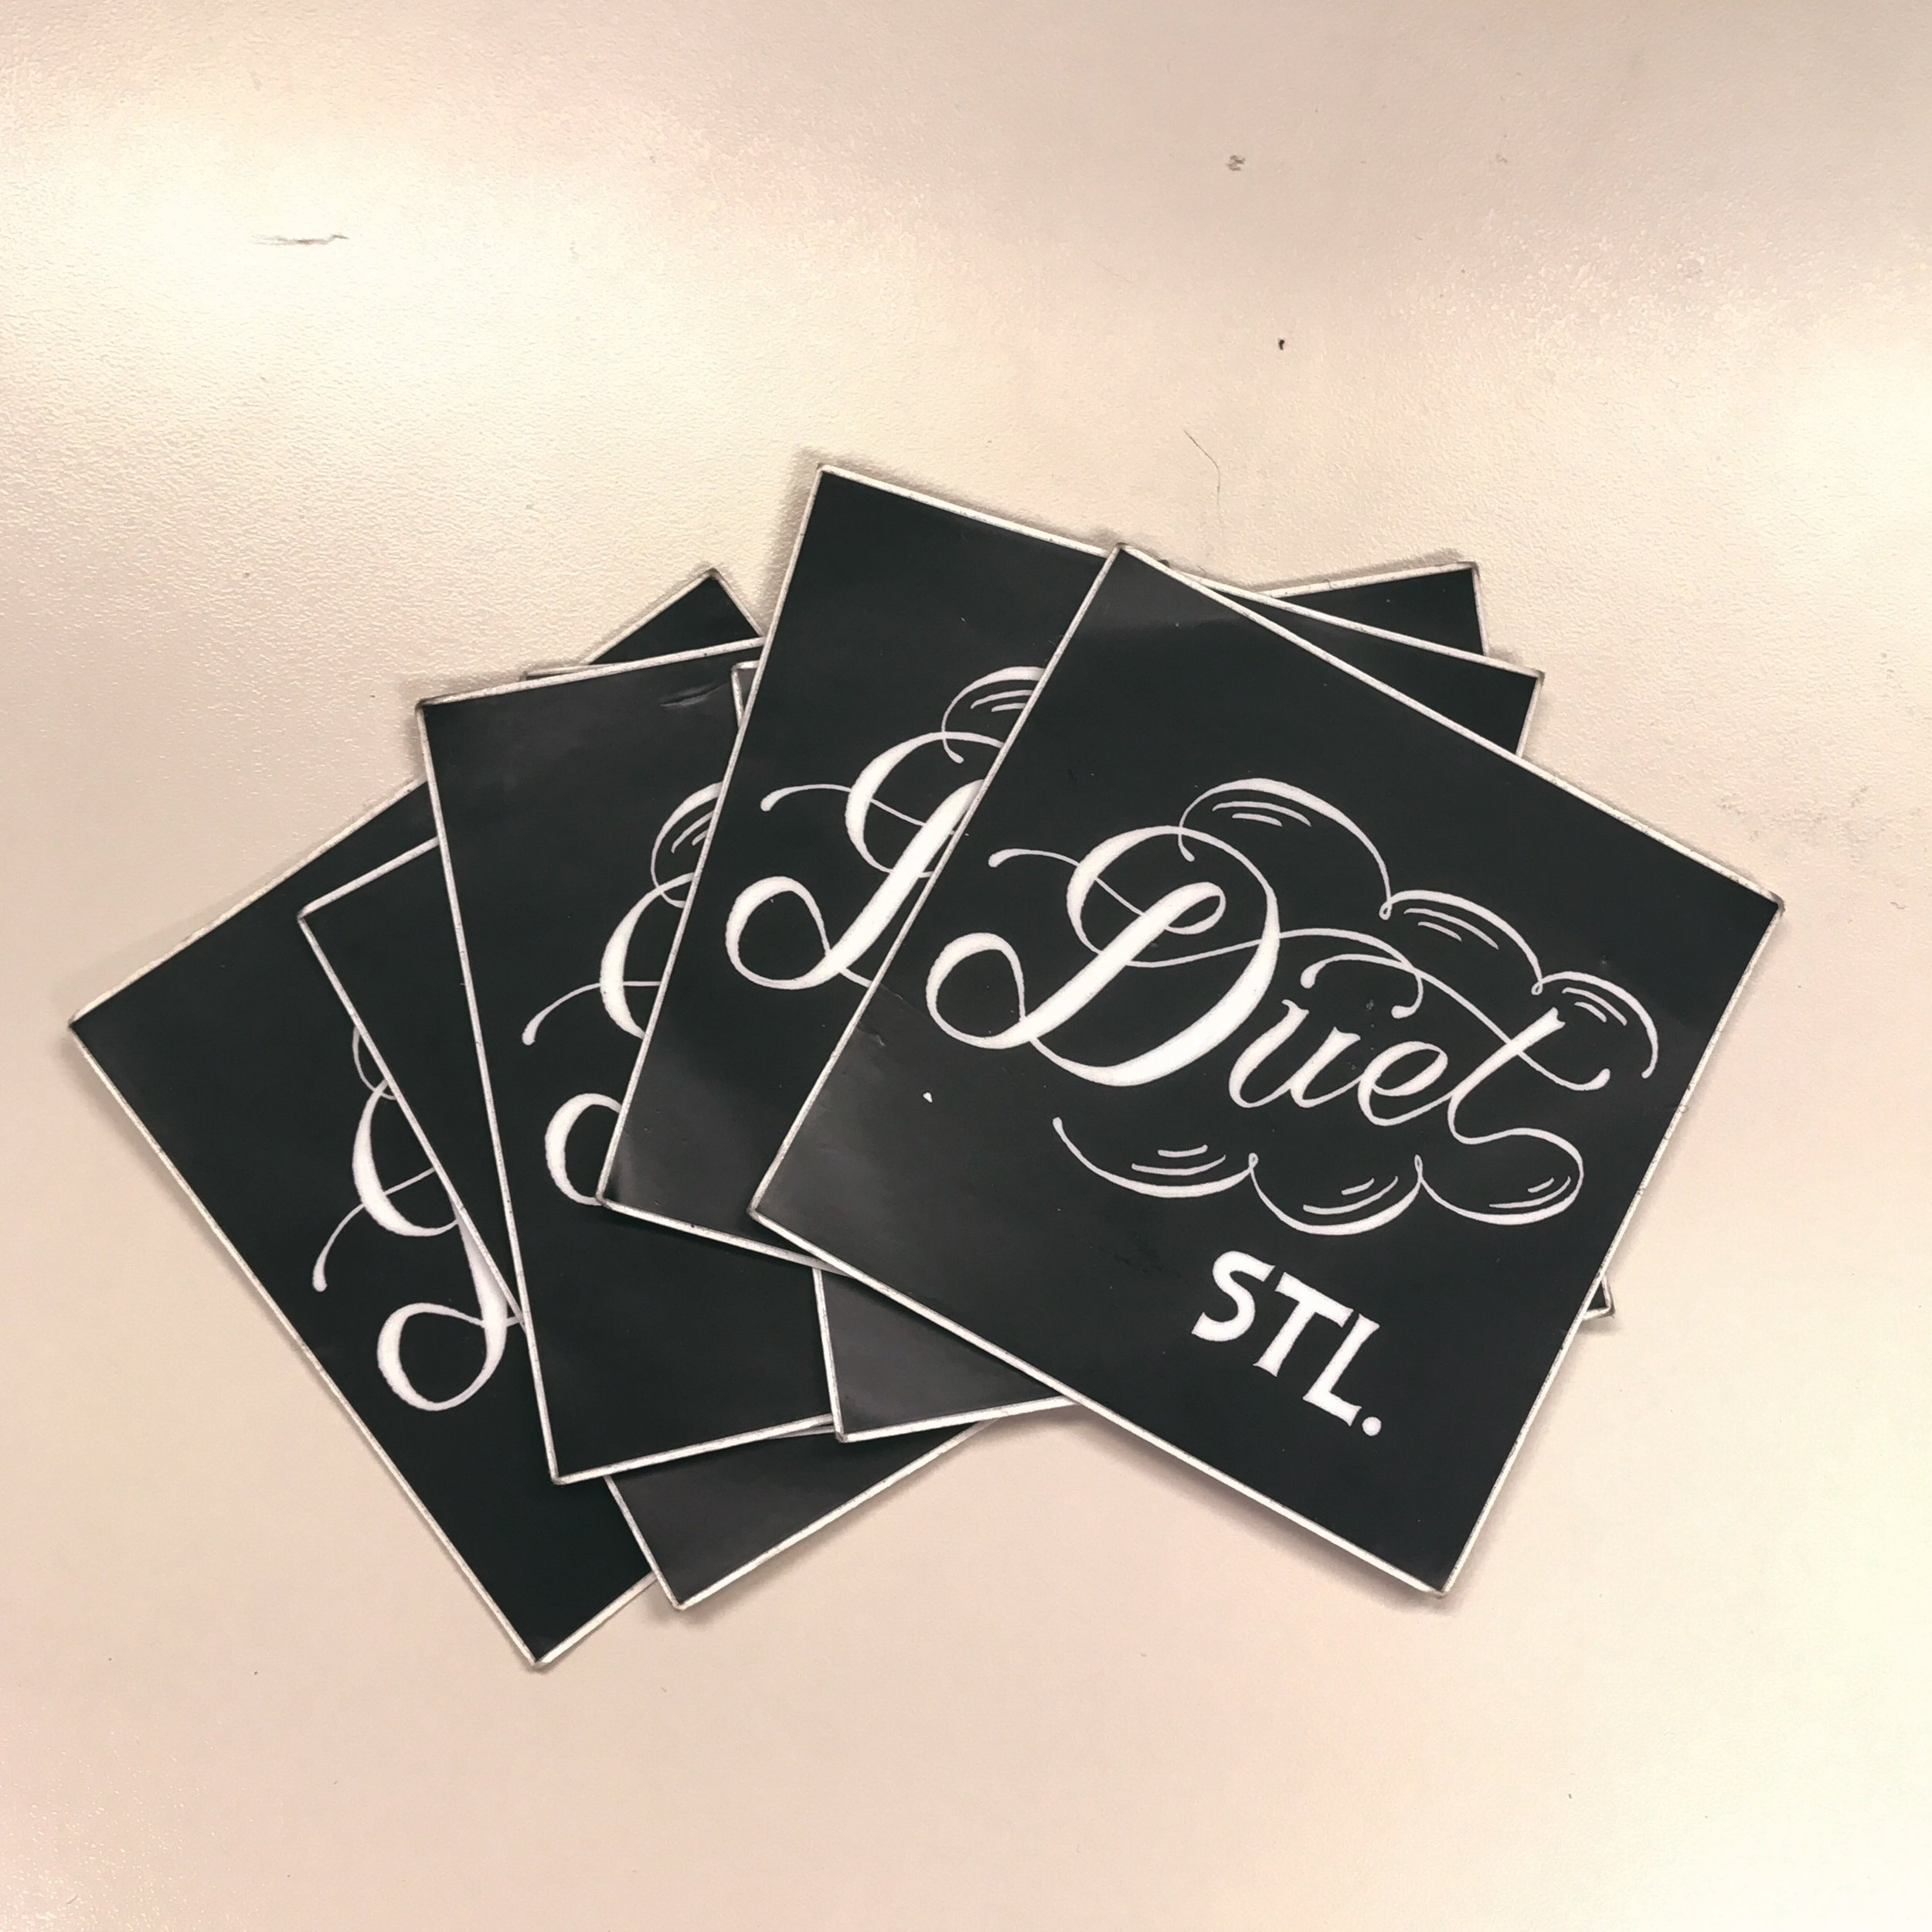 Sticker designed by Parker Gibson; printed by Sticker Mule